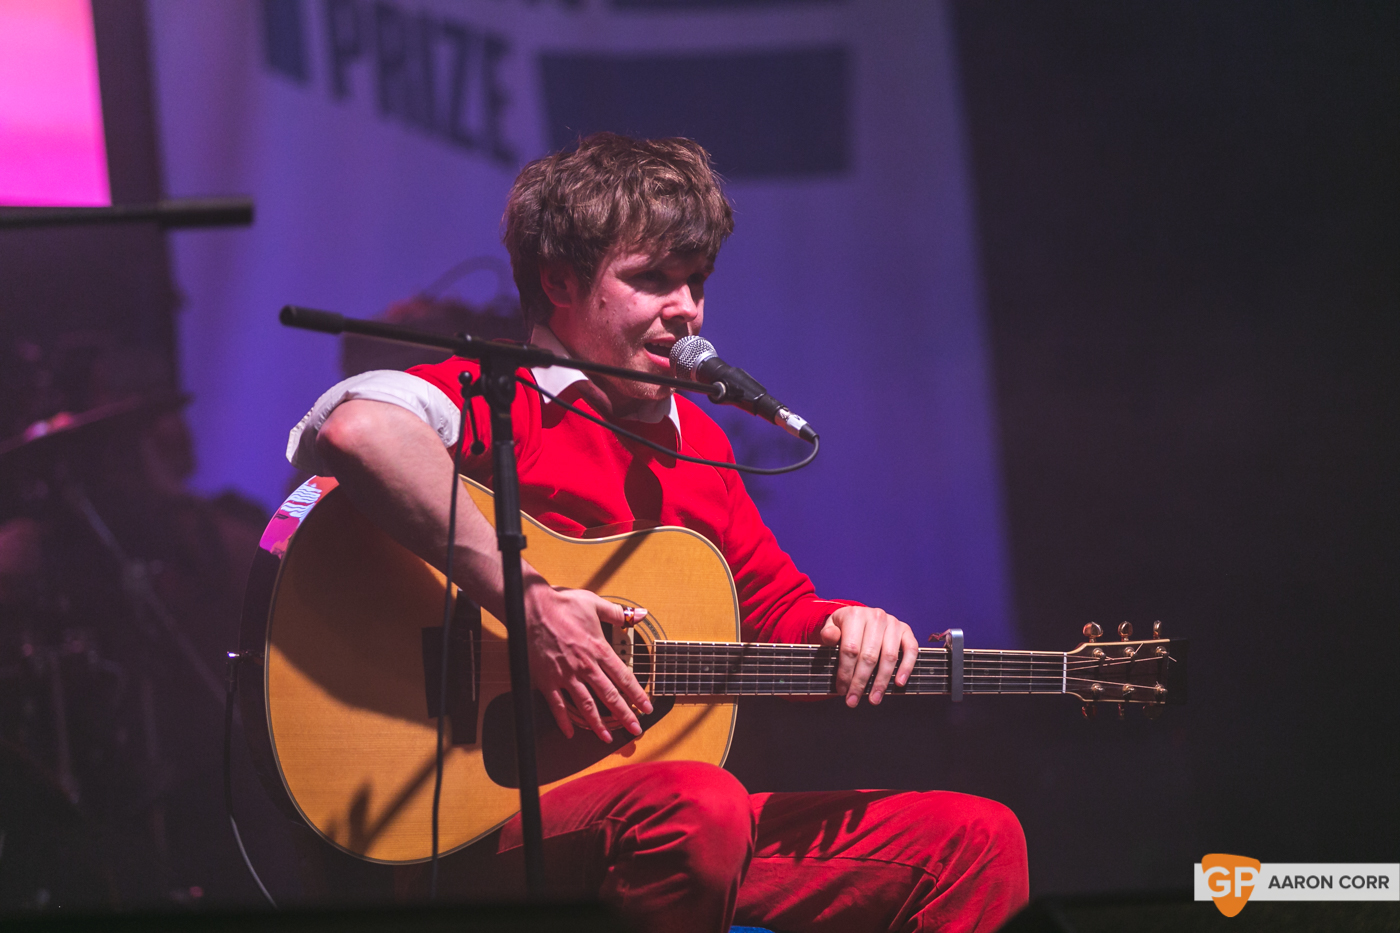 Junior Brother at Choice Music Prize 2020 in Vicar Street, Dublin on 05-Mar-20 by Aaron Corr-5041